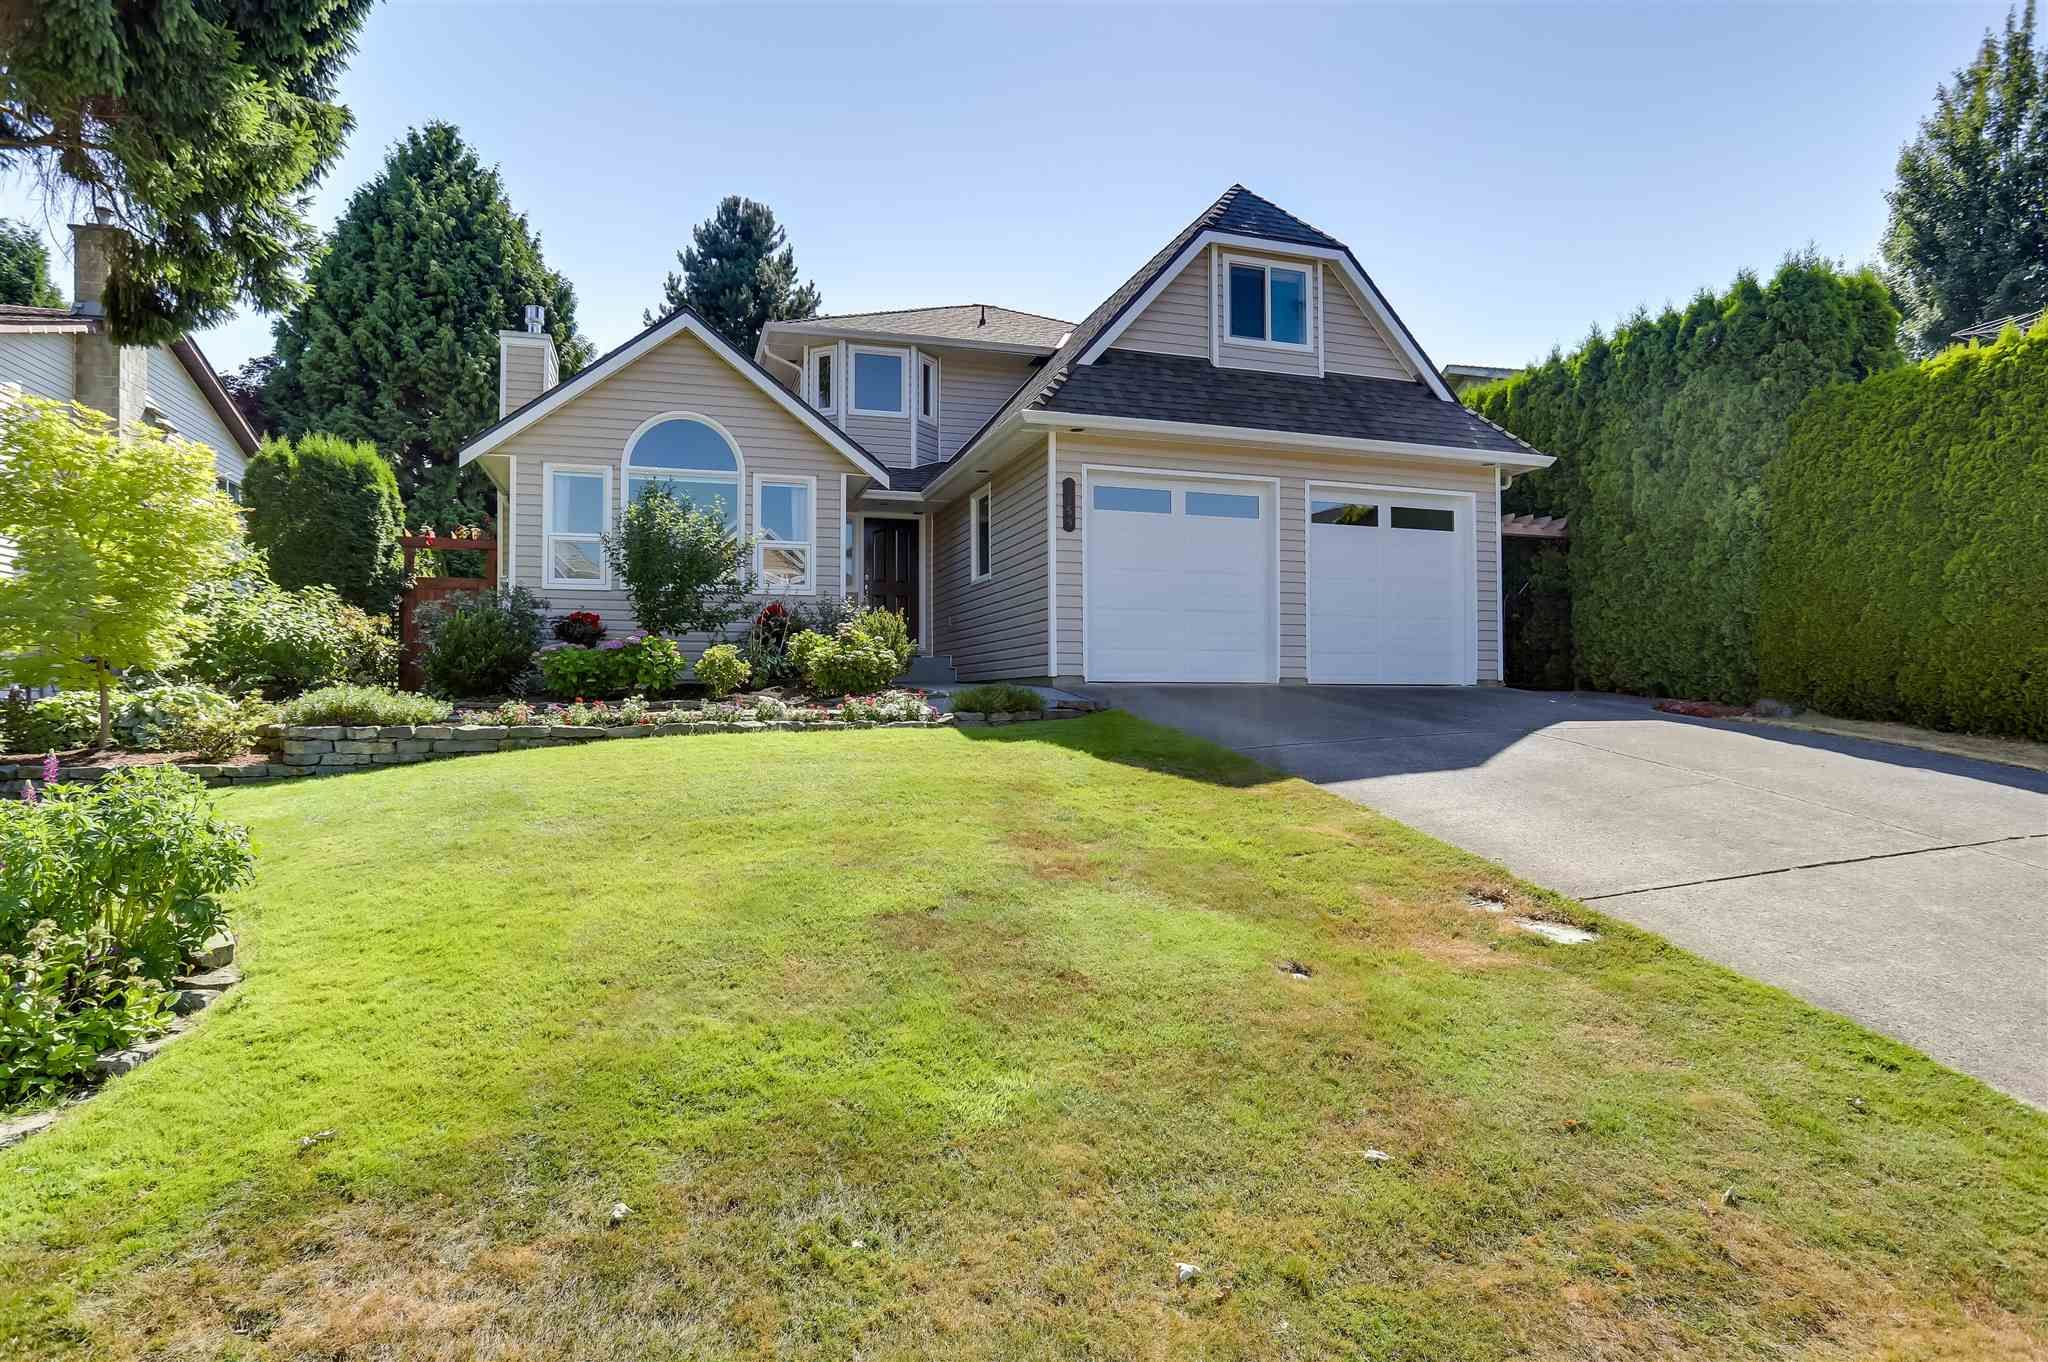 Main Photo: 2259 MADRONA Place in Surrey: King George Corridor House for sale (South Surrey White Rock)  : MLS®# R2599476